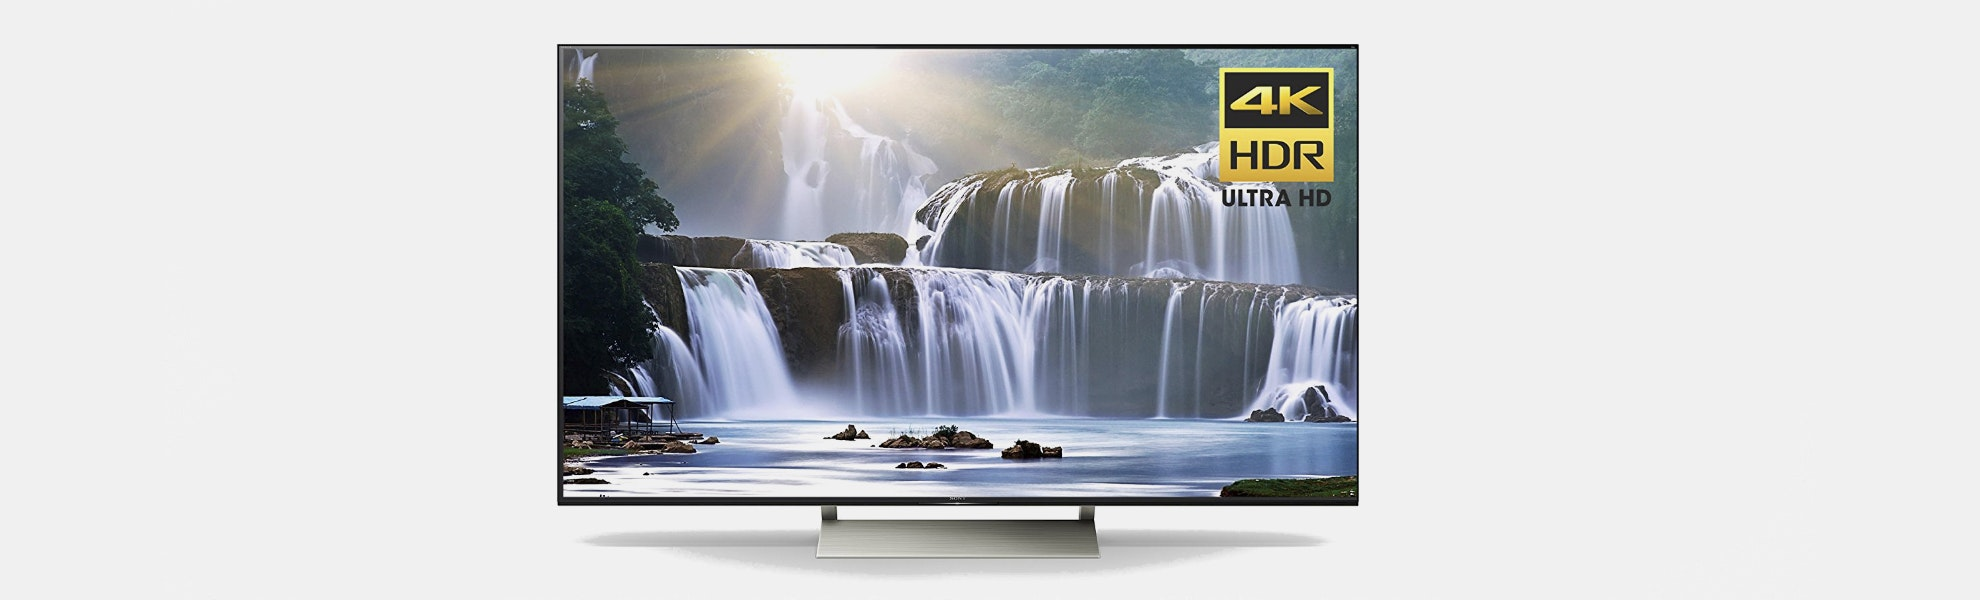 "Sony 75"" 4K HDR Extreme XBR-75X940E Ultra Slim TV"